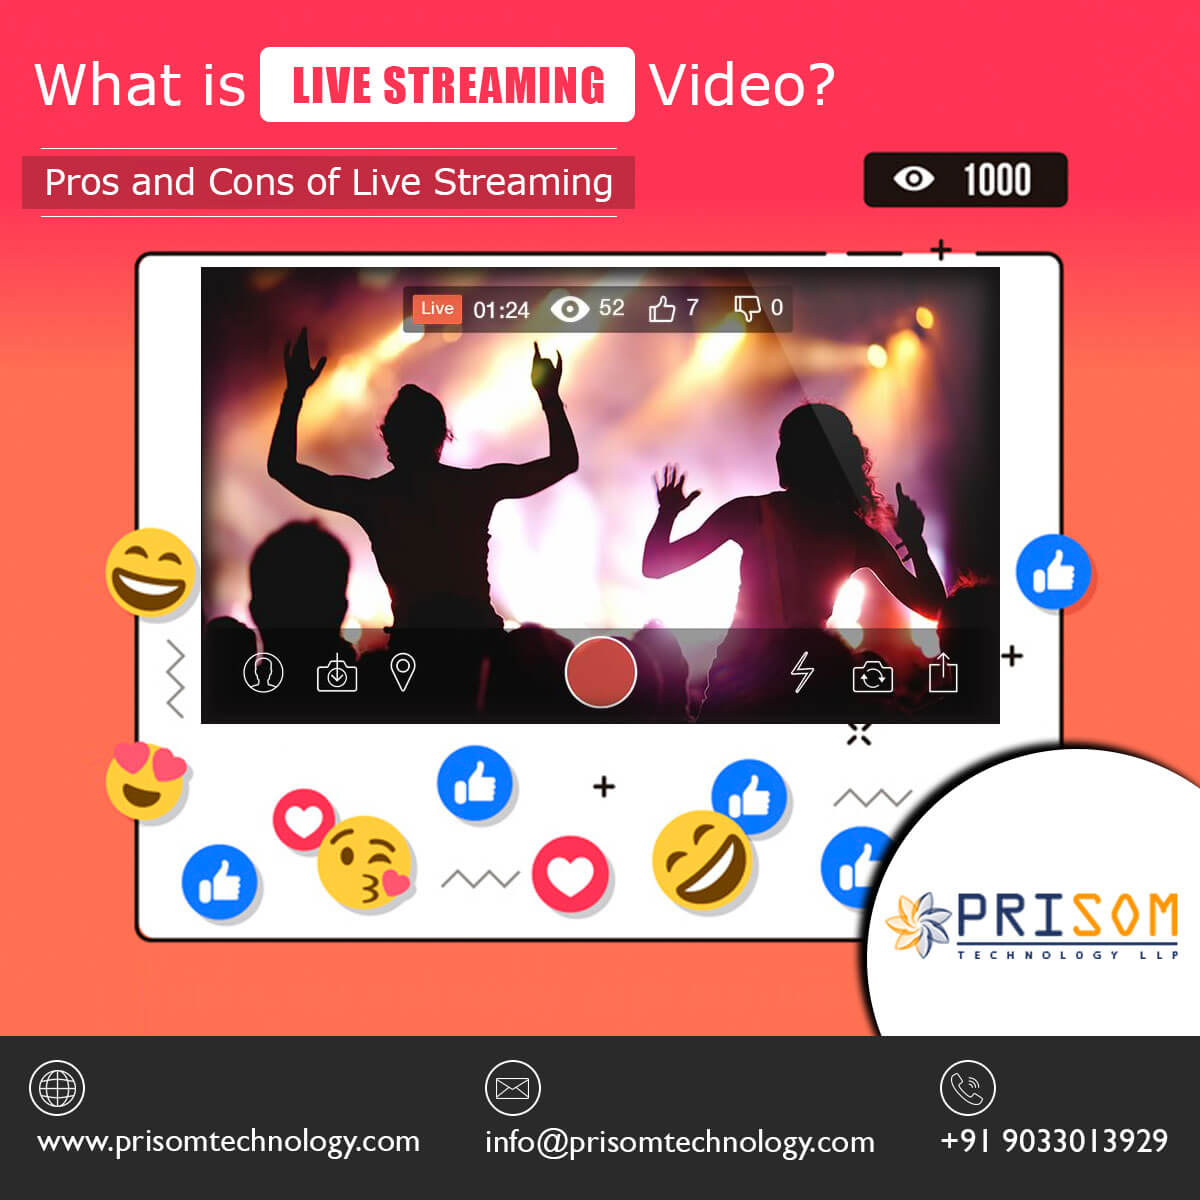 WHAT IS LIVE STREAMING VIDEO – PROS AND CONS OF LIVE STREAMING